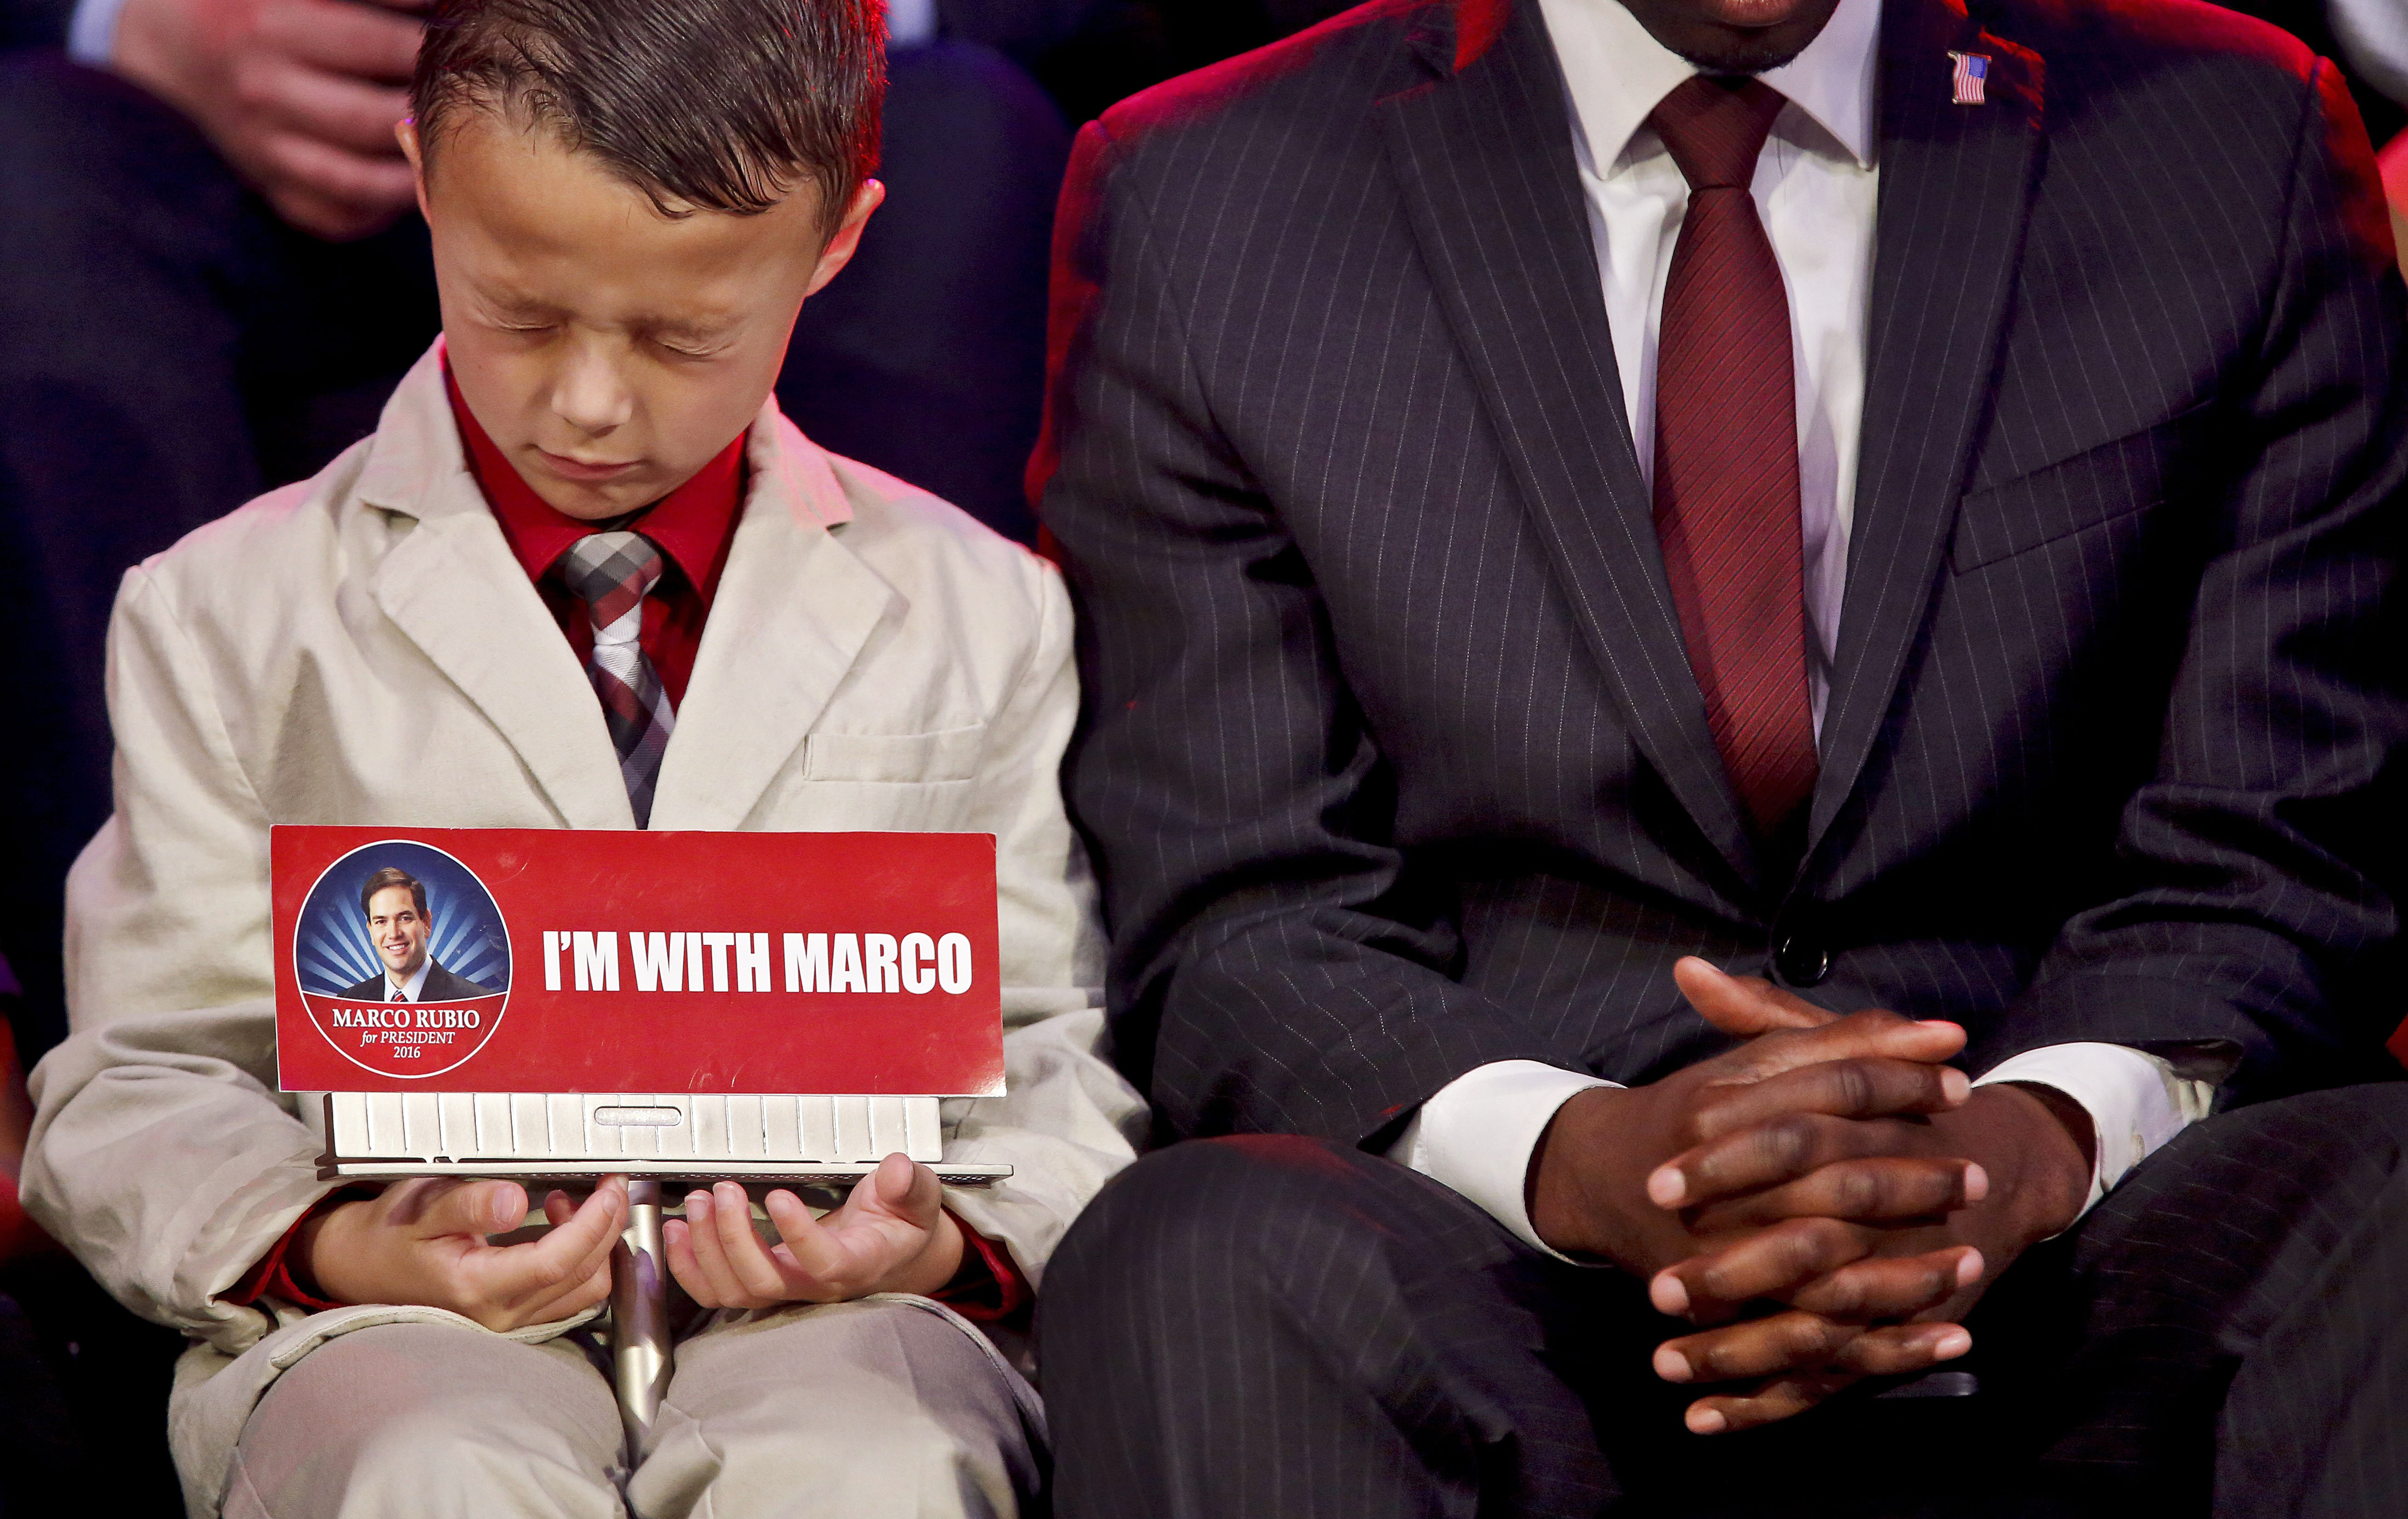 Six-year-old Aiden Thurman, of Hugo, Okla. prays during a campaign stop by Republican presidential candidate Marco Rubio on Feb. 26, 2016, in Oklahoma City.